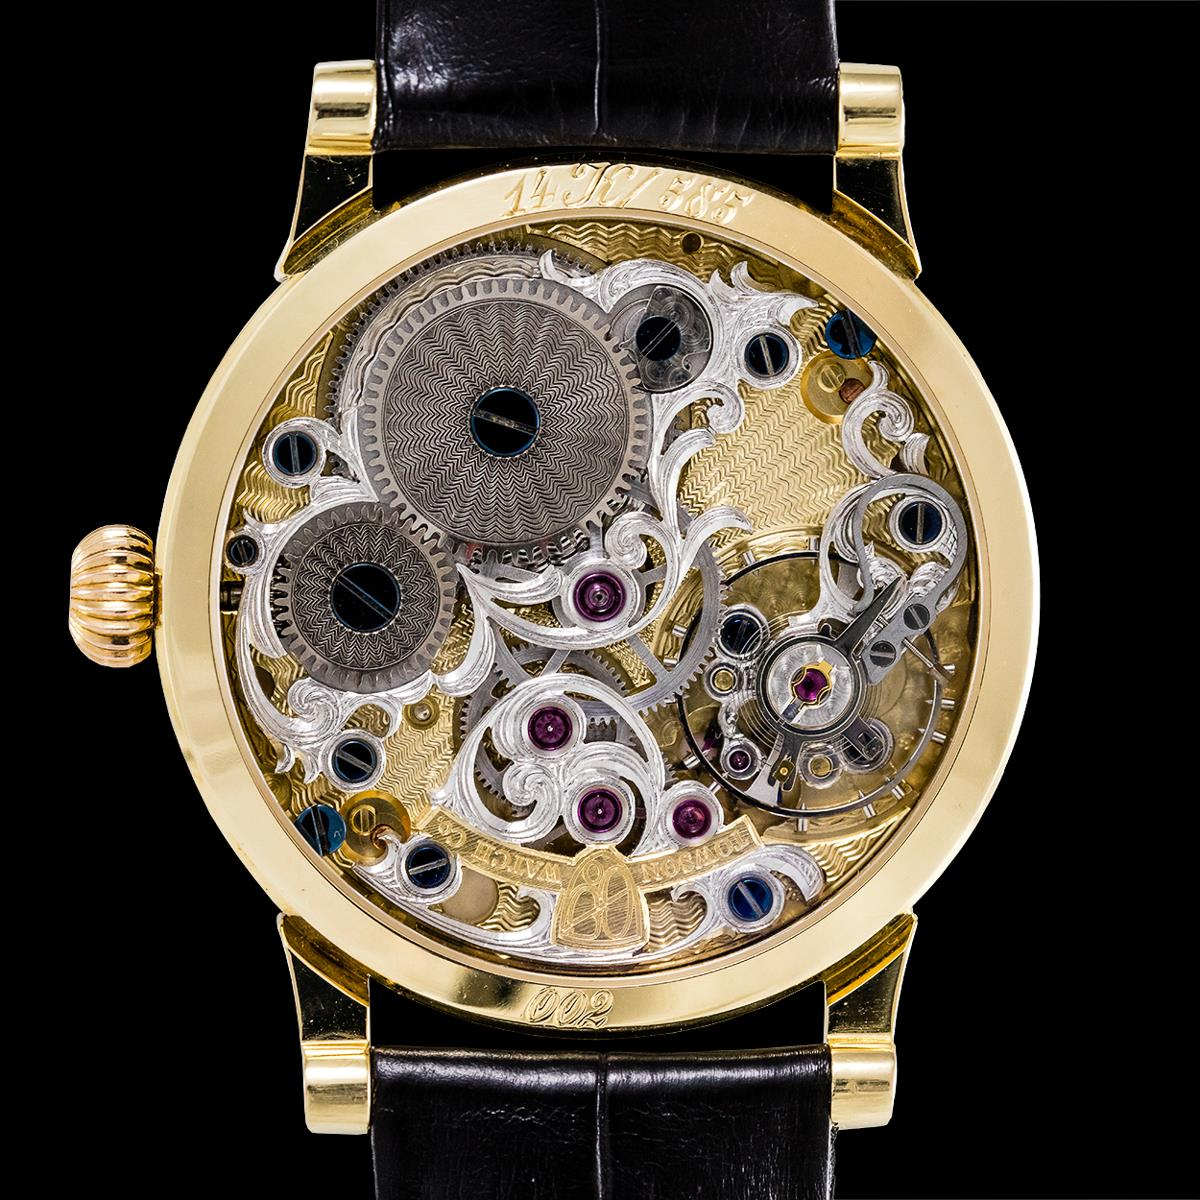 Master watchmaker George Thomas of Towson Watch Company inspecting his work.